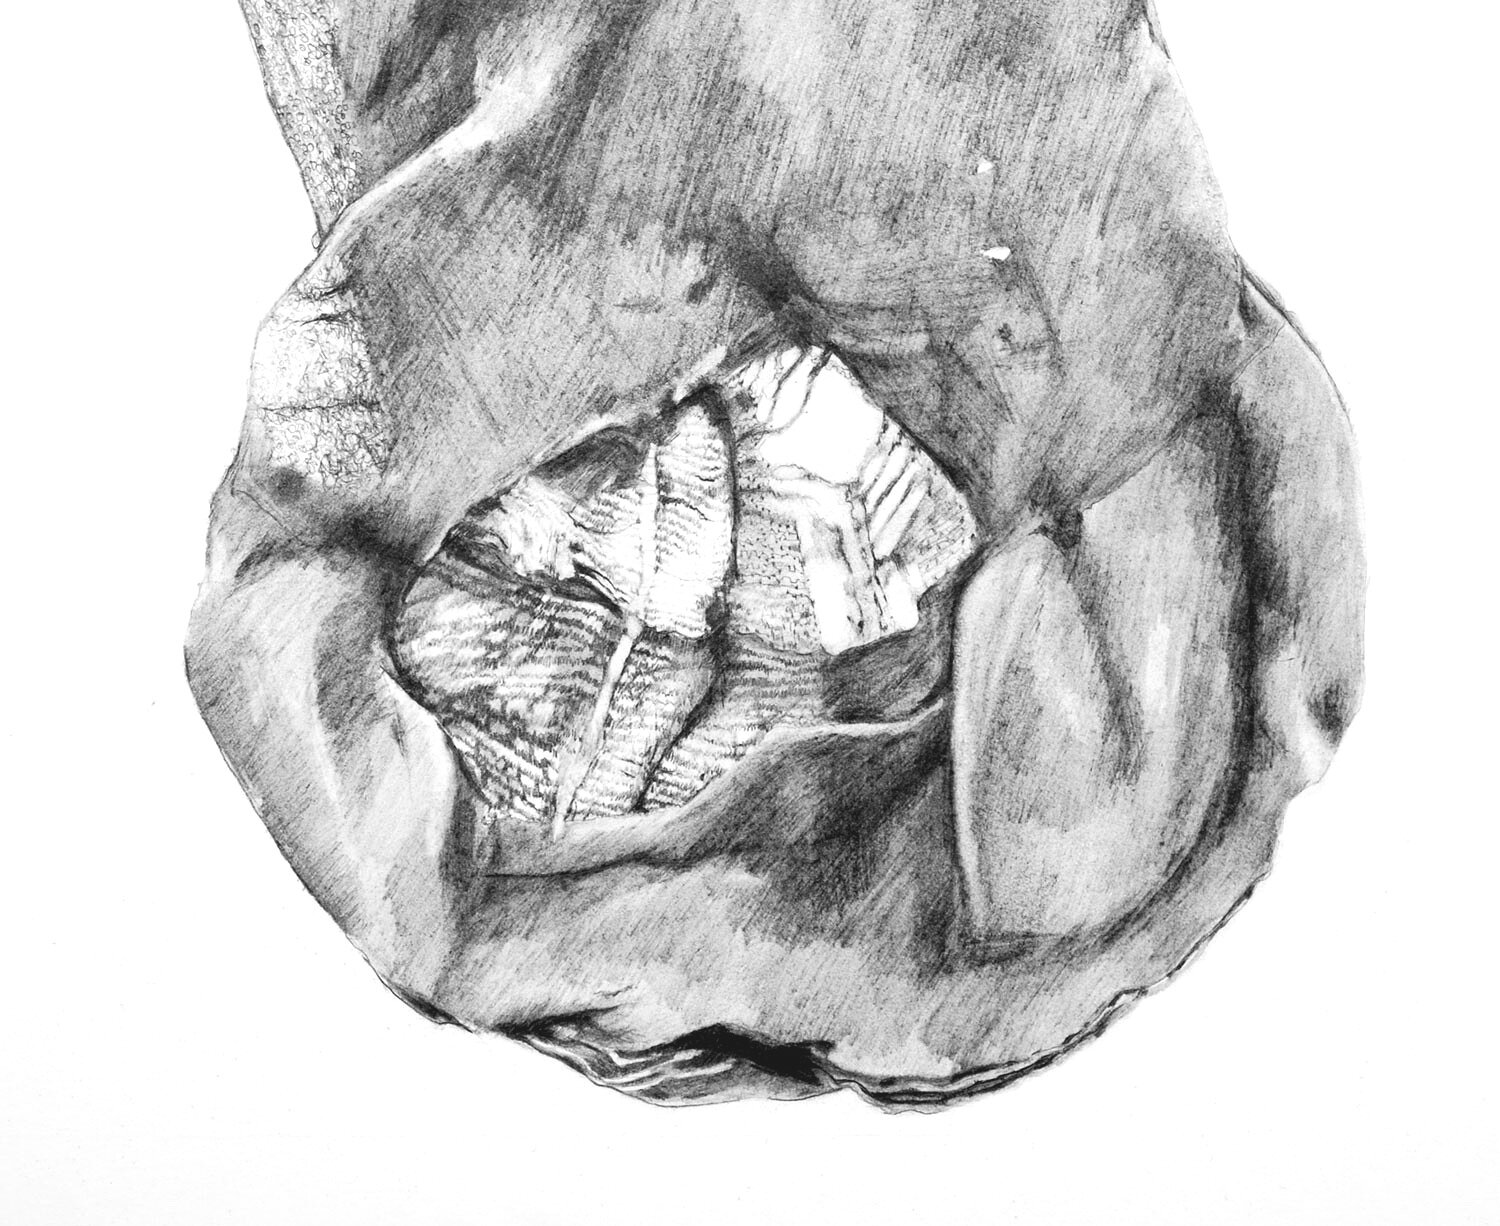 Sock (detail)   Materials:  Graphite on paper   Date of Creation:  2007